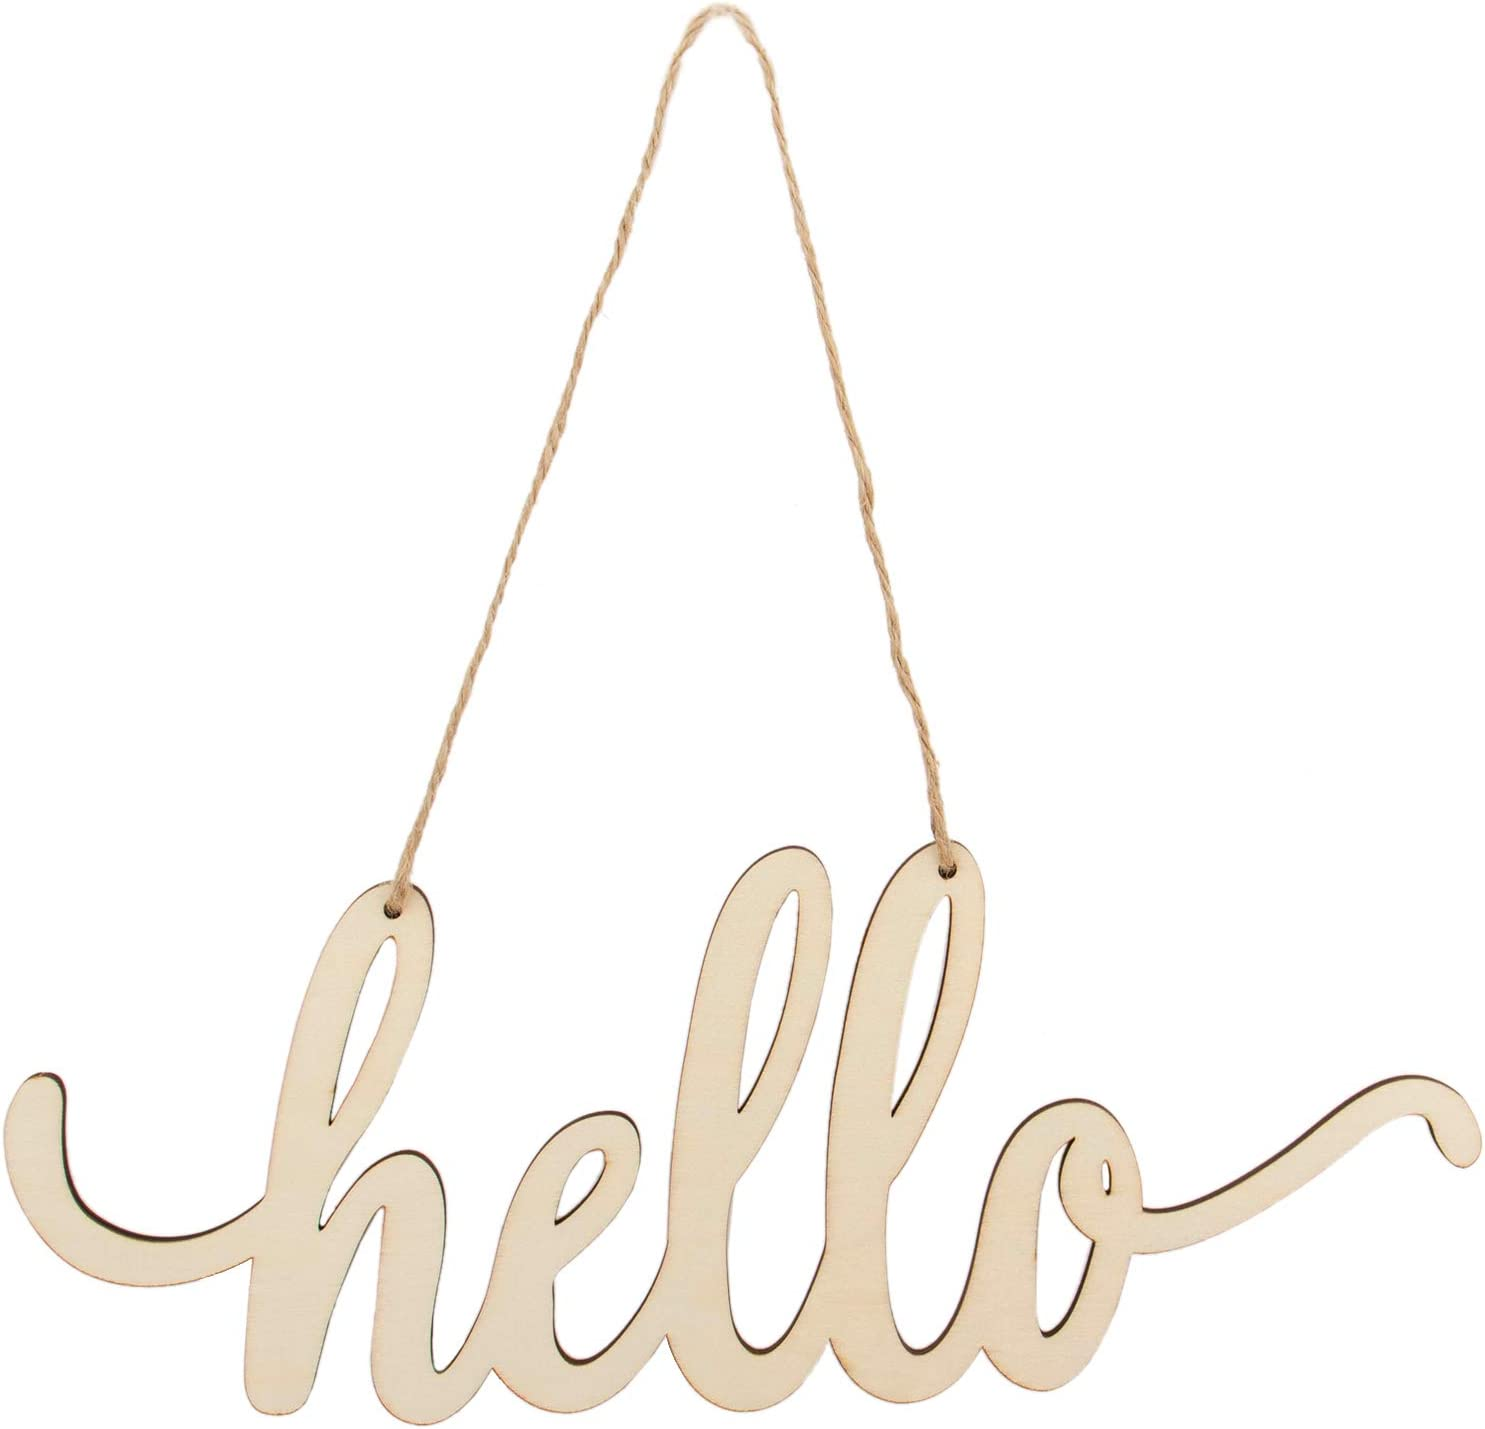 Framendino, Hello Wood Sign Cutout Home Wall Decor Unfinished Wooden Letters with Rope DIY Block Words Sign Art Decoration